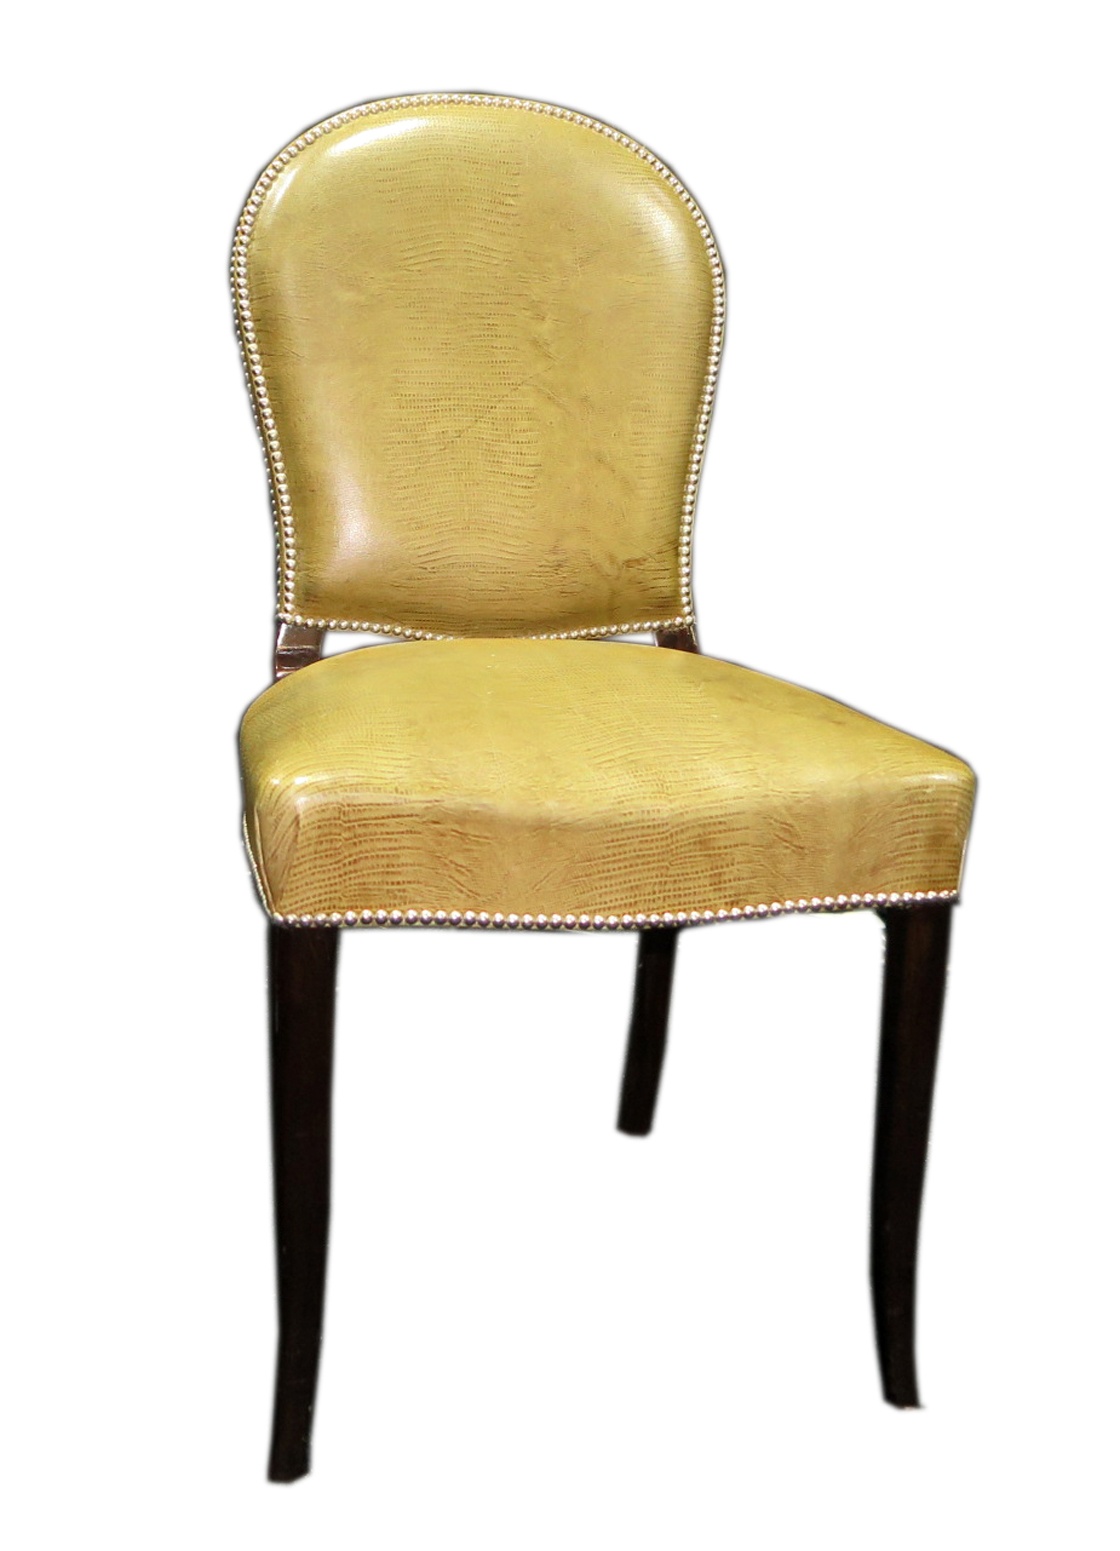 Charmant Art Deco Chairs In Leather From The Hotel Nogaro 1930s